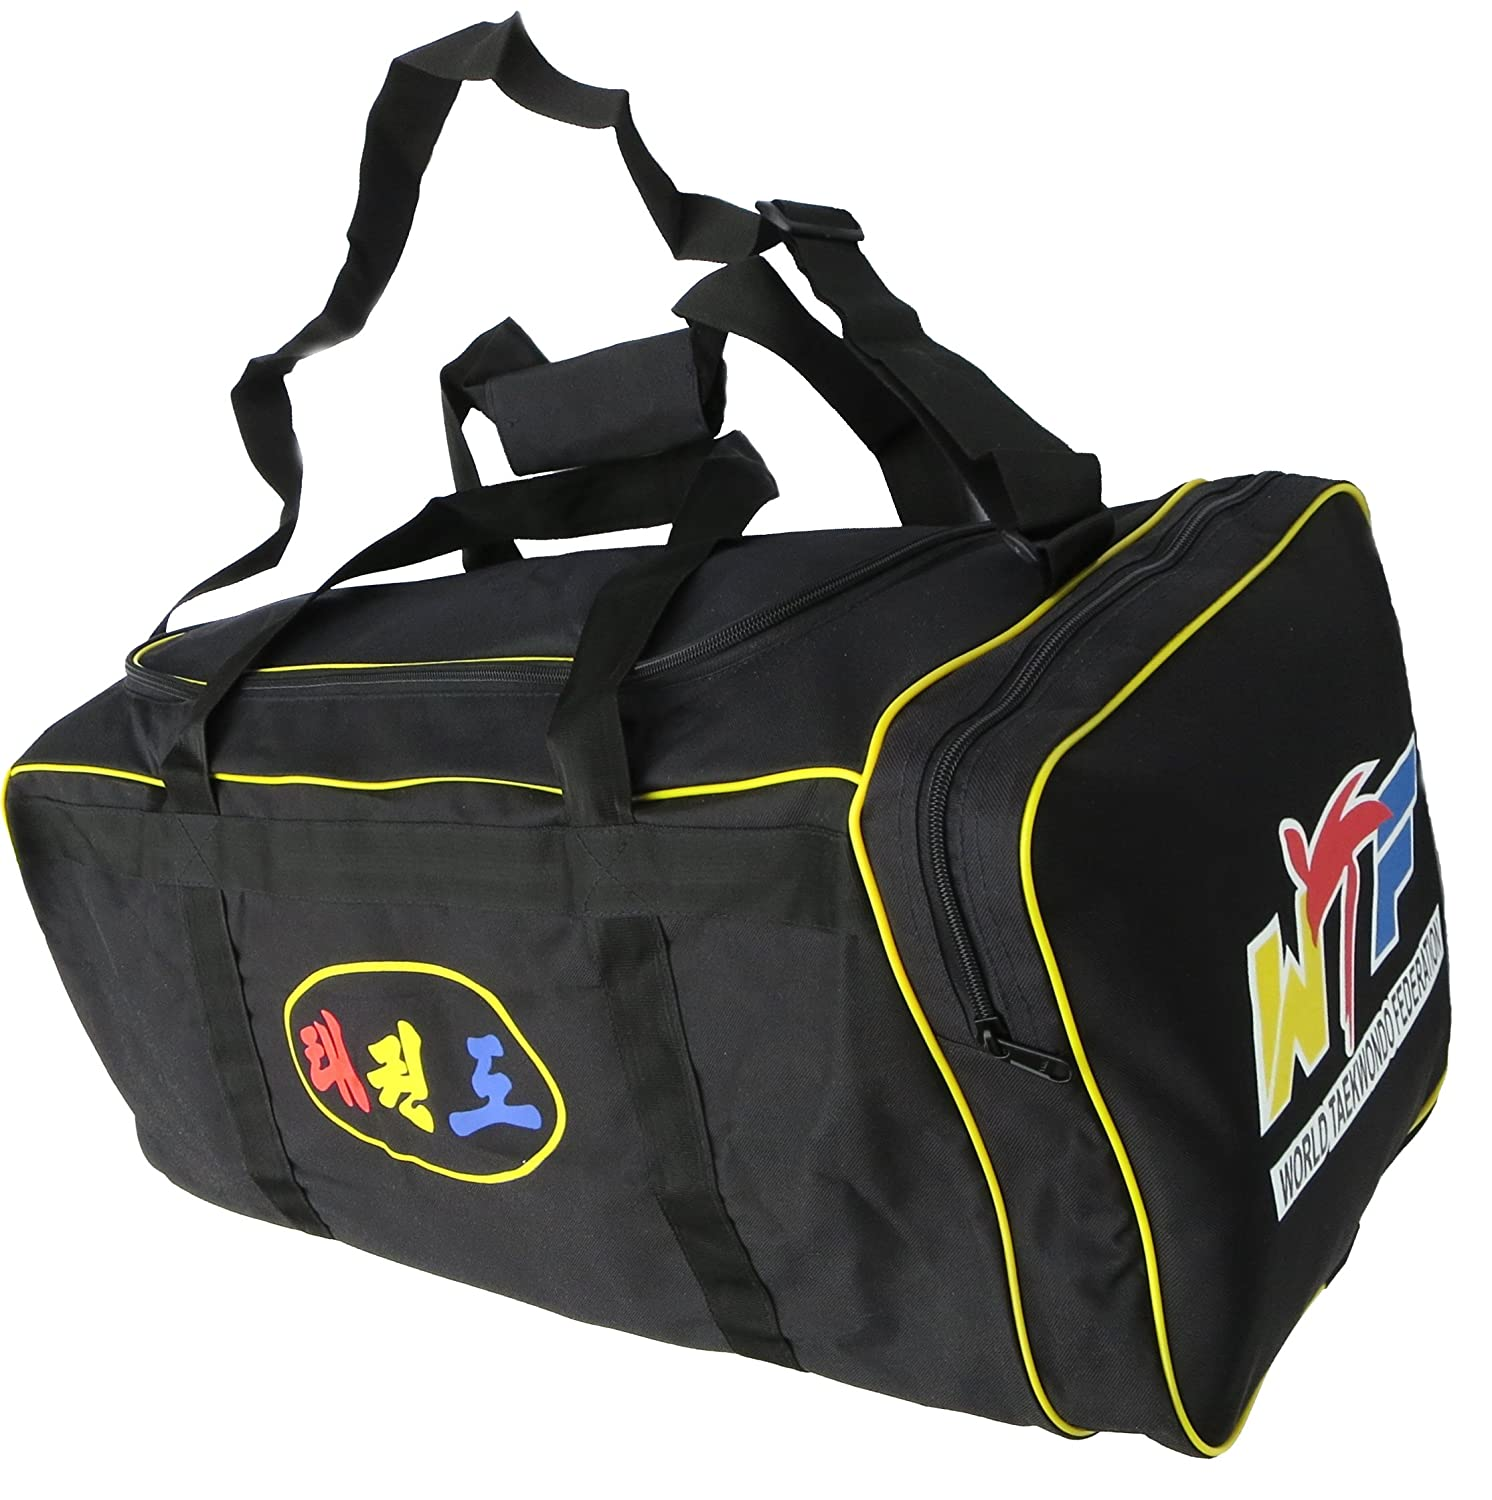 Taekwondo Holdalls with new WTF logo - Great Bags for you or a Gift Sportsupply.org